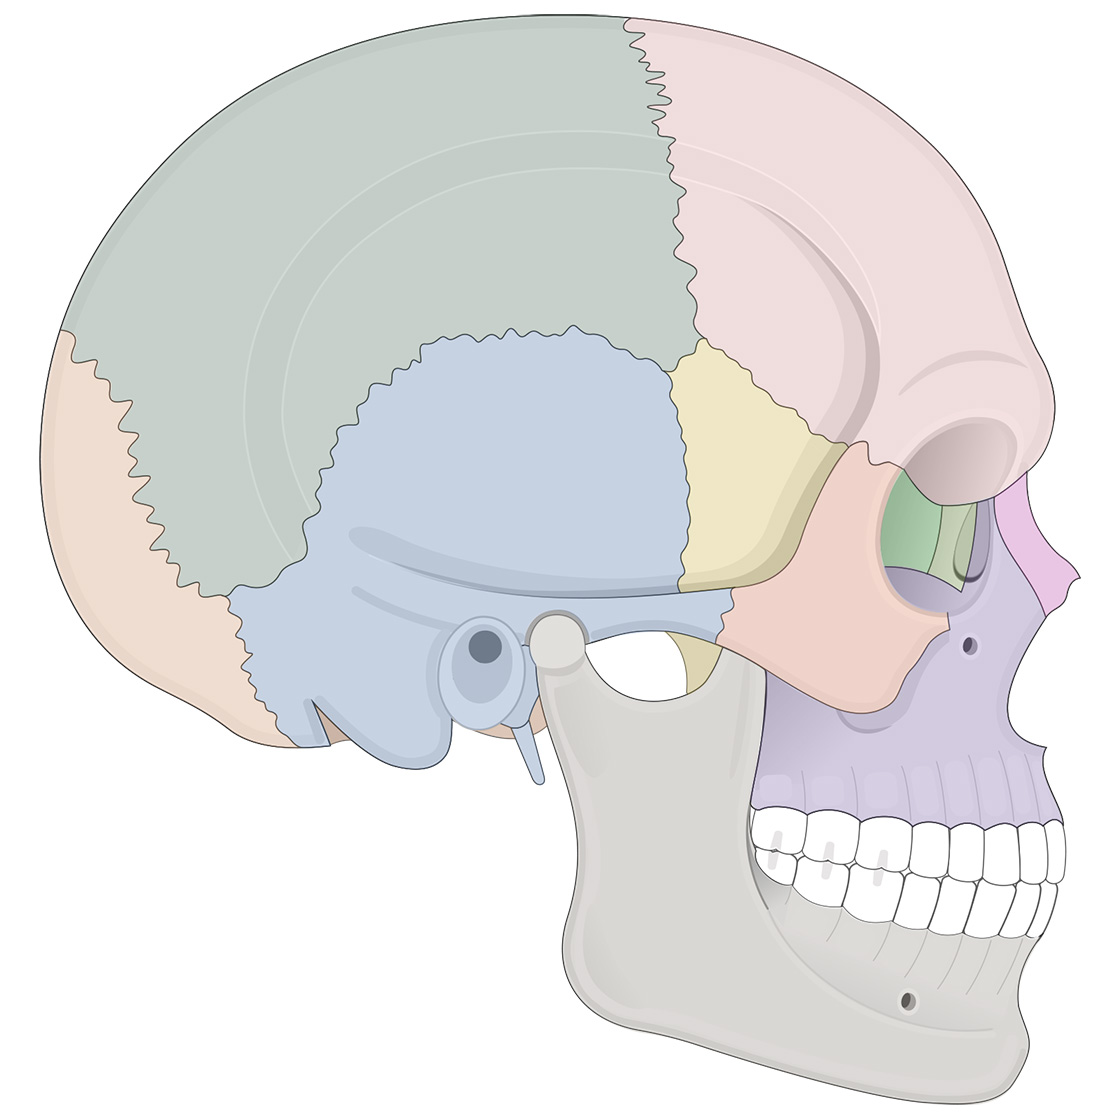 Lateral view of human skull (multicolor overlay)